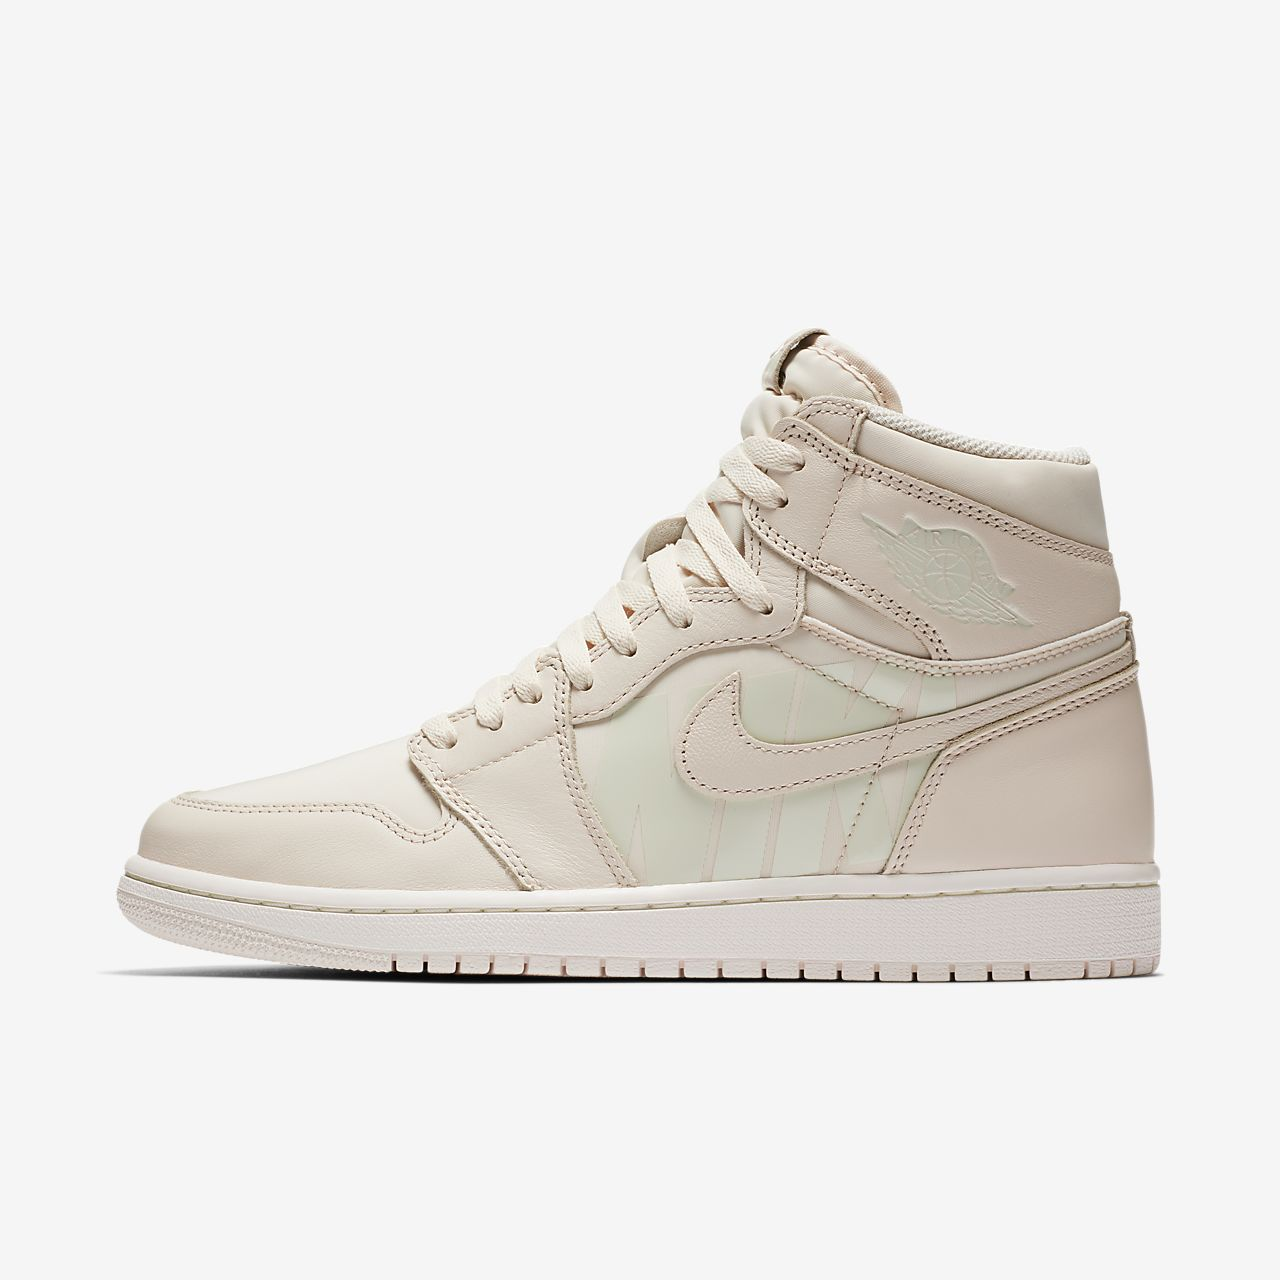 93ad8b036fcf Air Jordan 1 Retro High OG Shoe. Nike.com